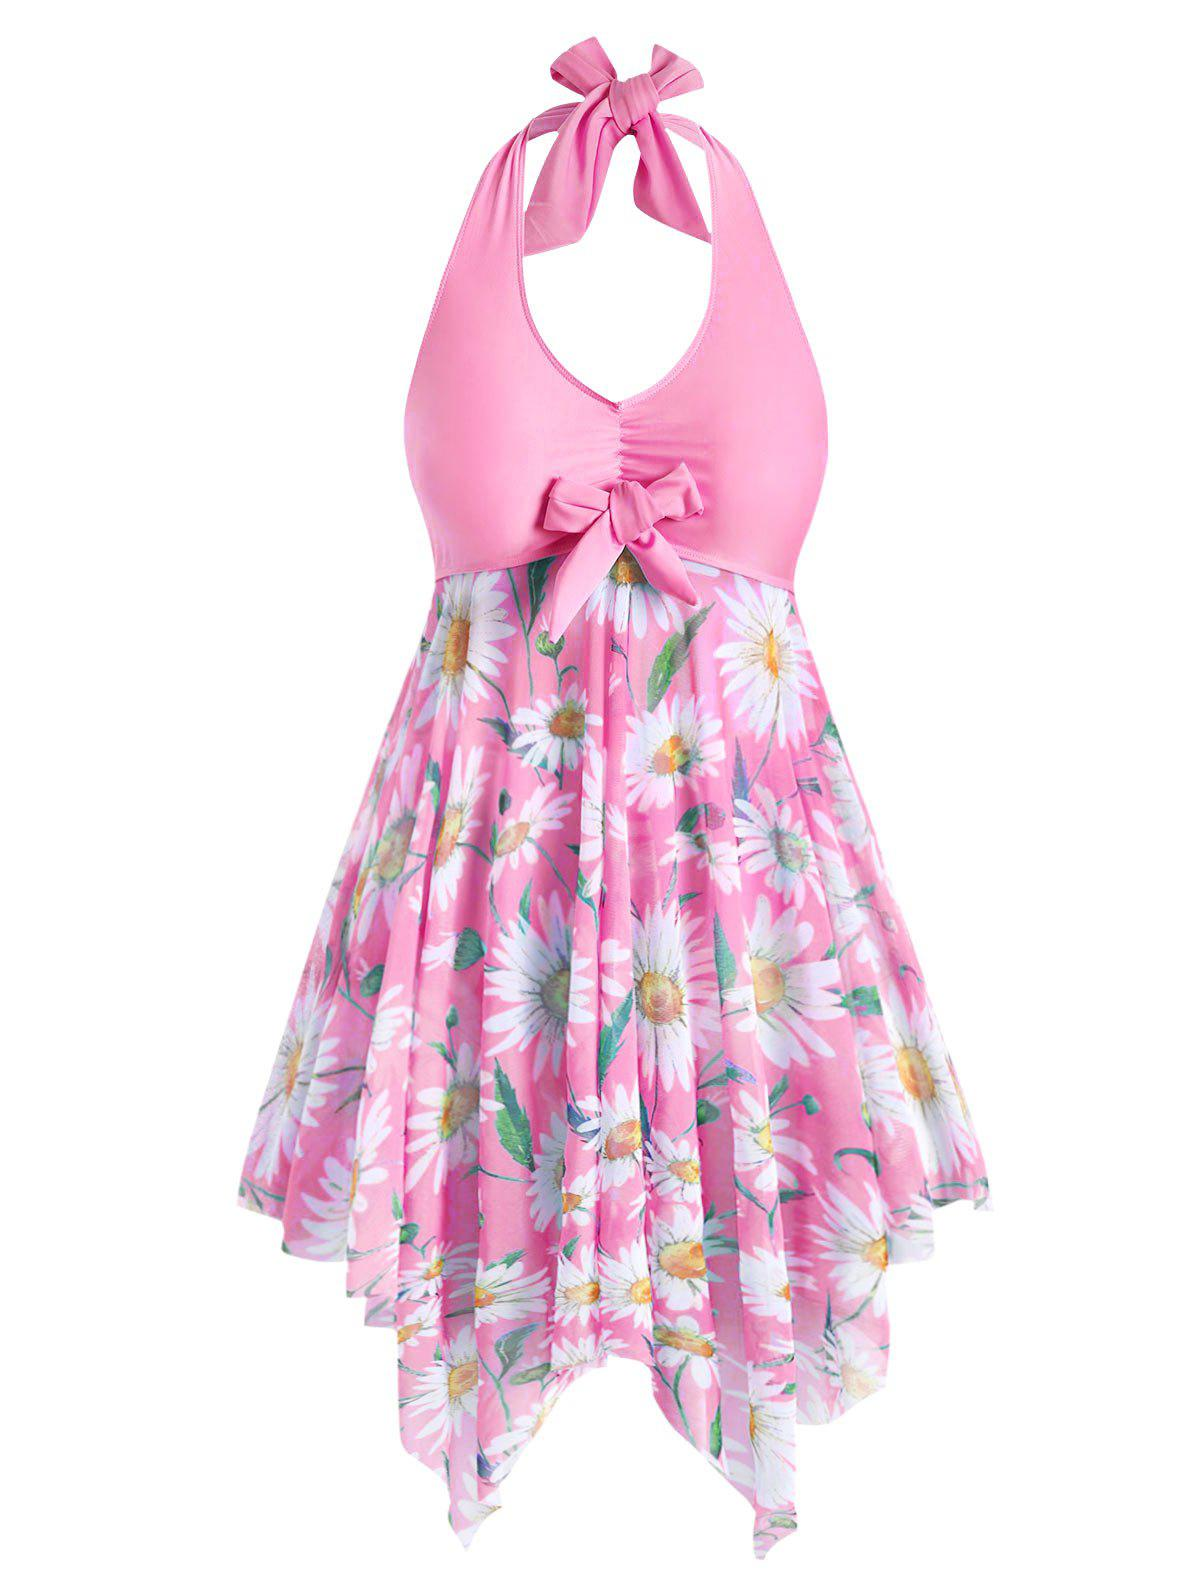 Buy Plus Size Sunflower Print Backless Handkerchief Tankini Swimsuit